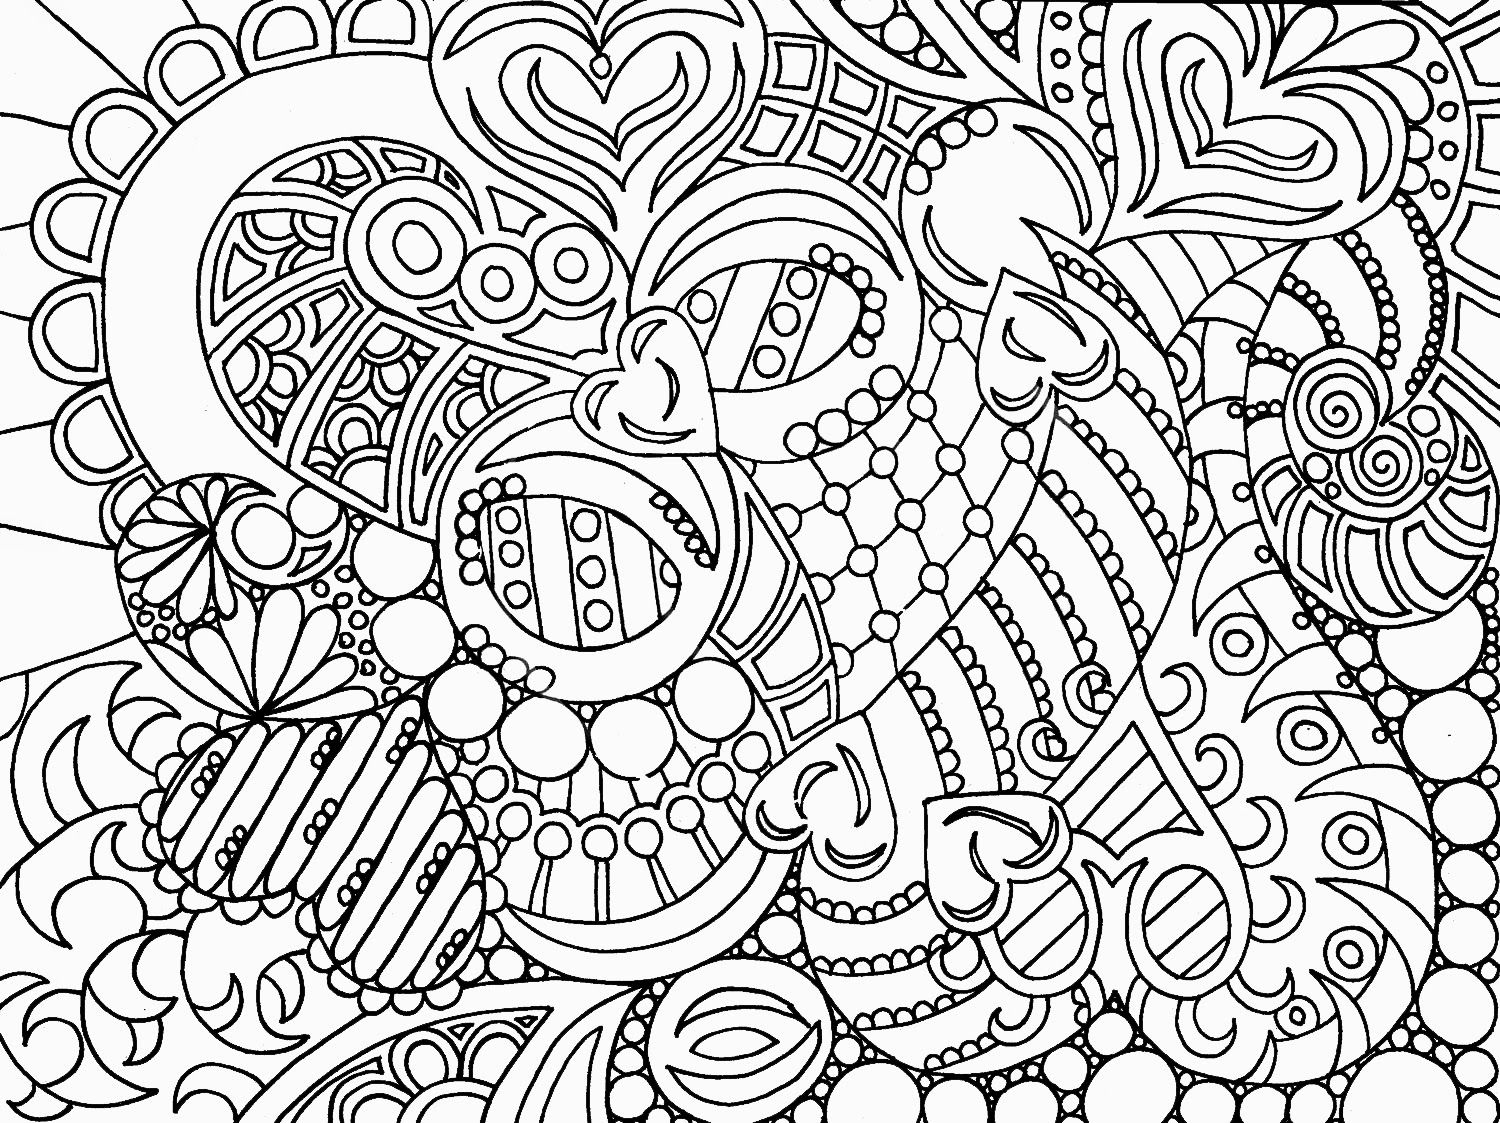 1500x1123 Abstract Art Coloring For Adult Coloring Pages